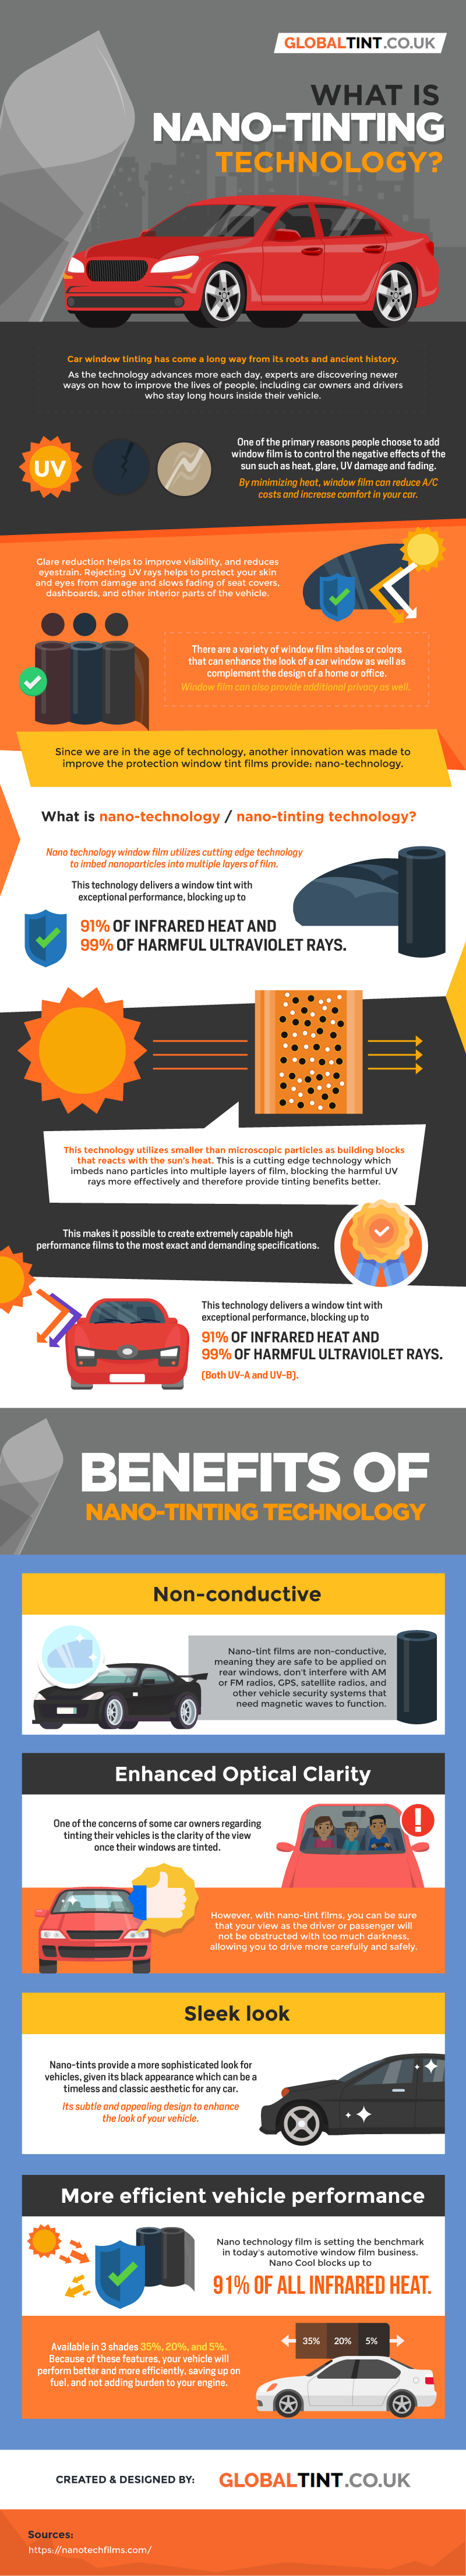 Nano-Tinting Technology: A Huge Value-Addition to Car Tinting Film - Infographic